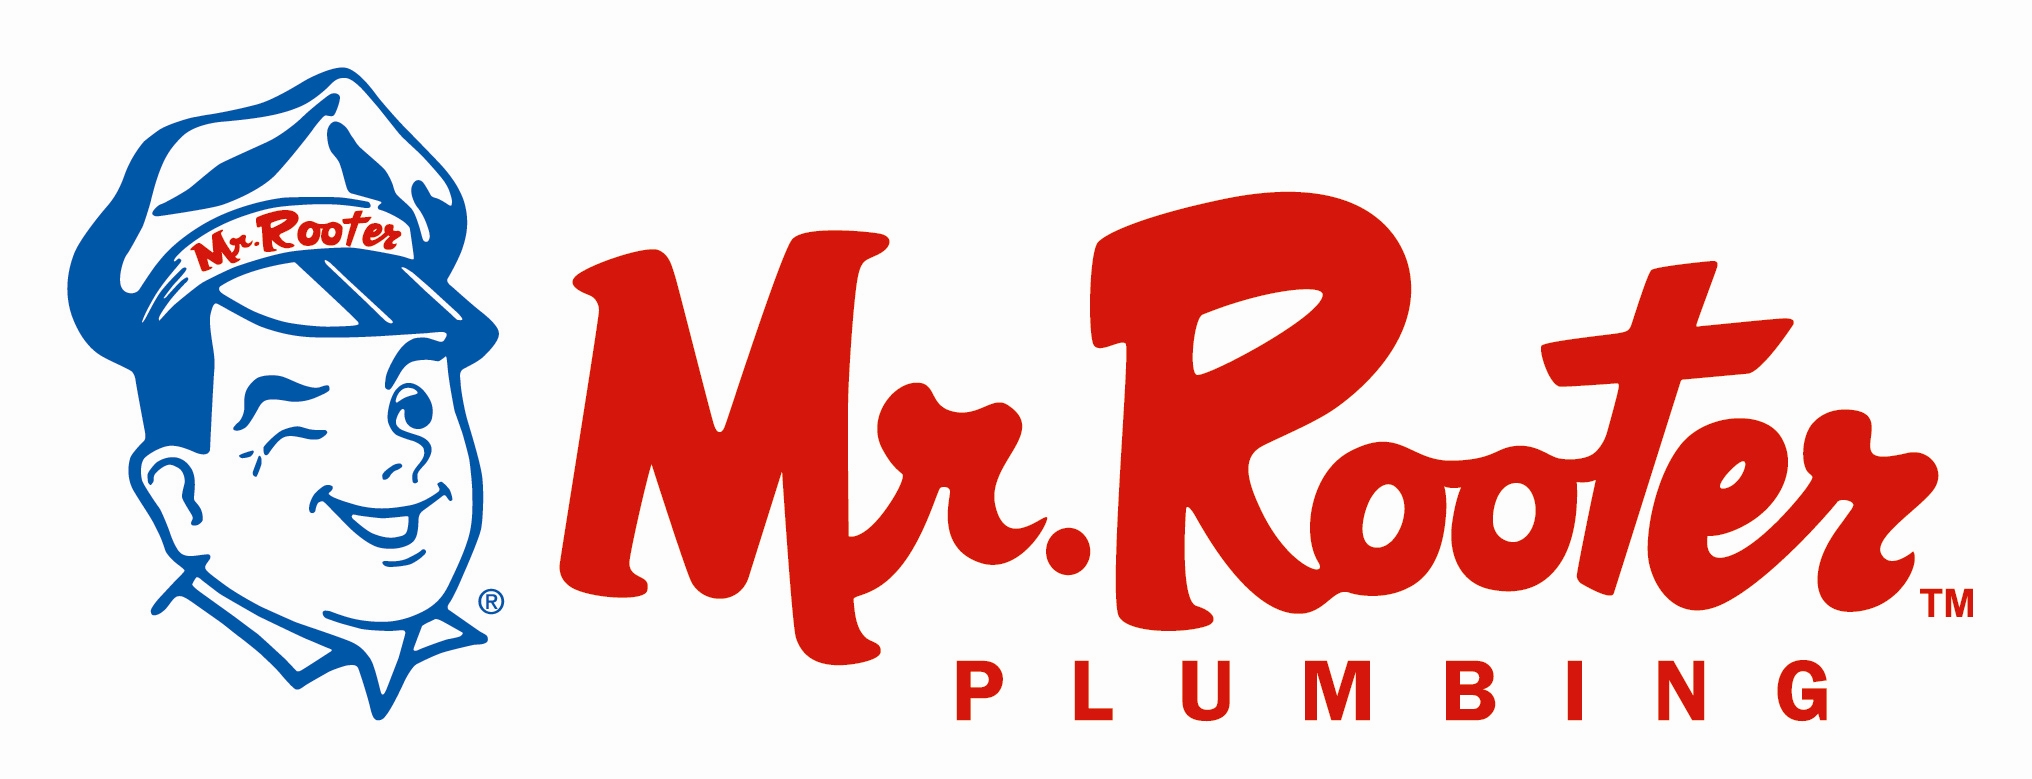 Mr. Rooter Corporation 